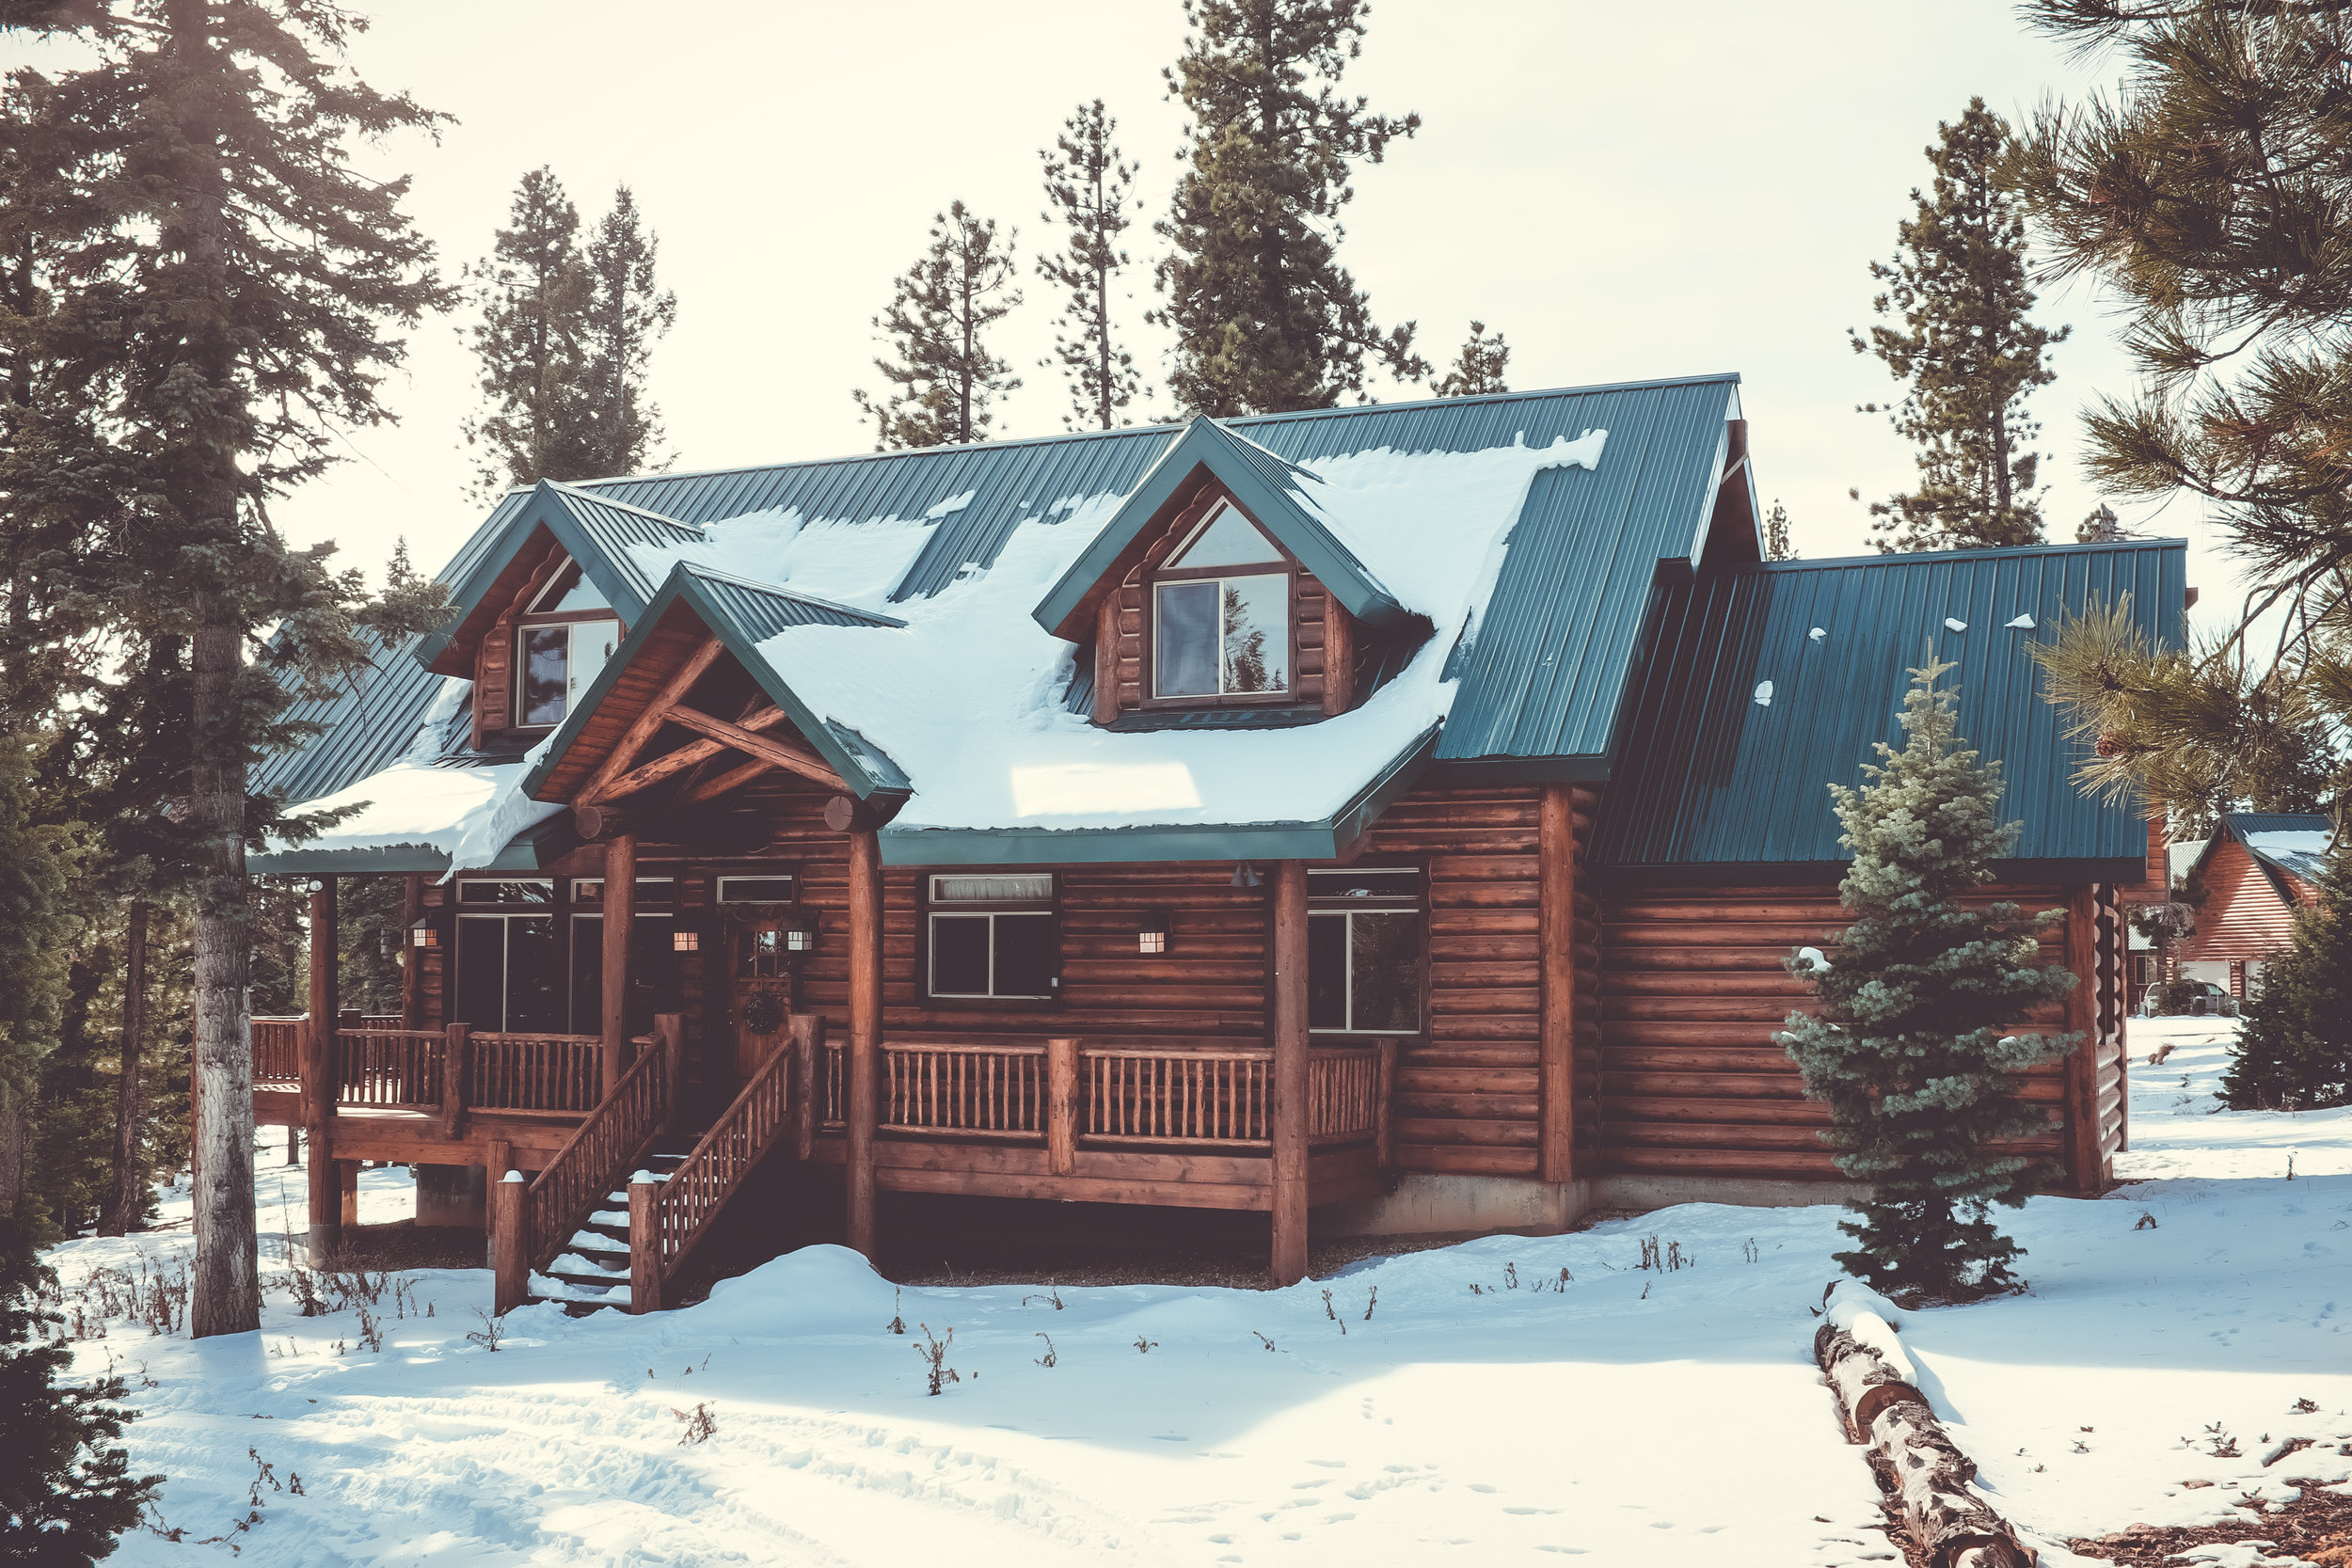 Off to the cabin to enjoy winter? Let Homethority look after your home.